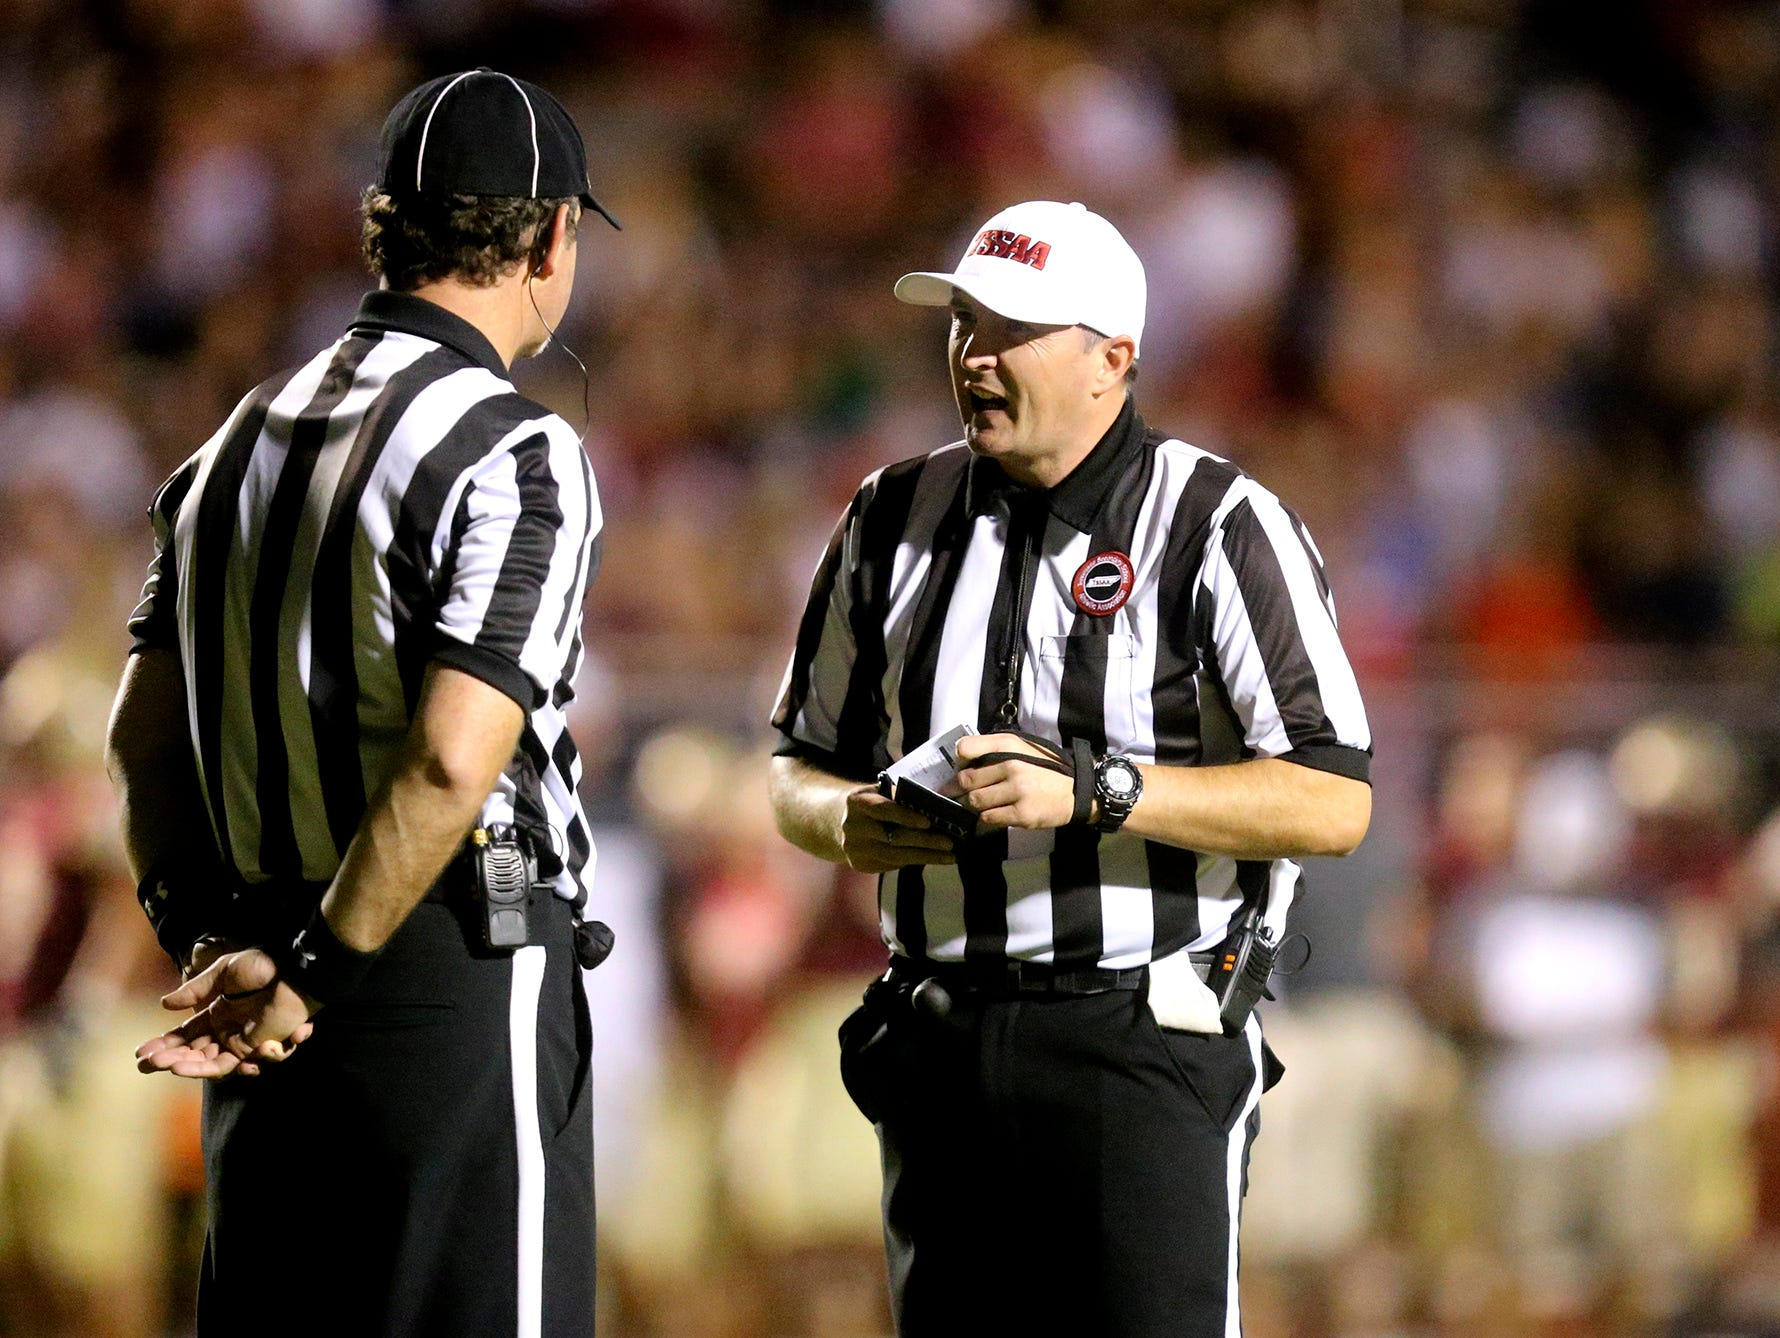 Referees Peter Keating, left and Jeremy Tollison talk during a break in the action of the Riverdale football game against Blackman on Sept. 2, 2016.